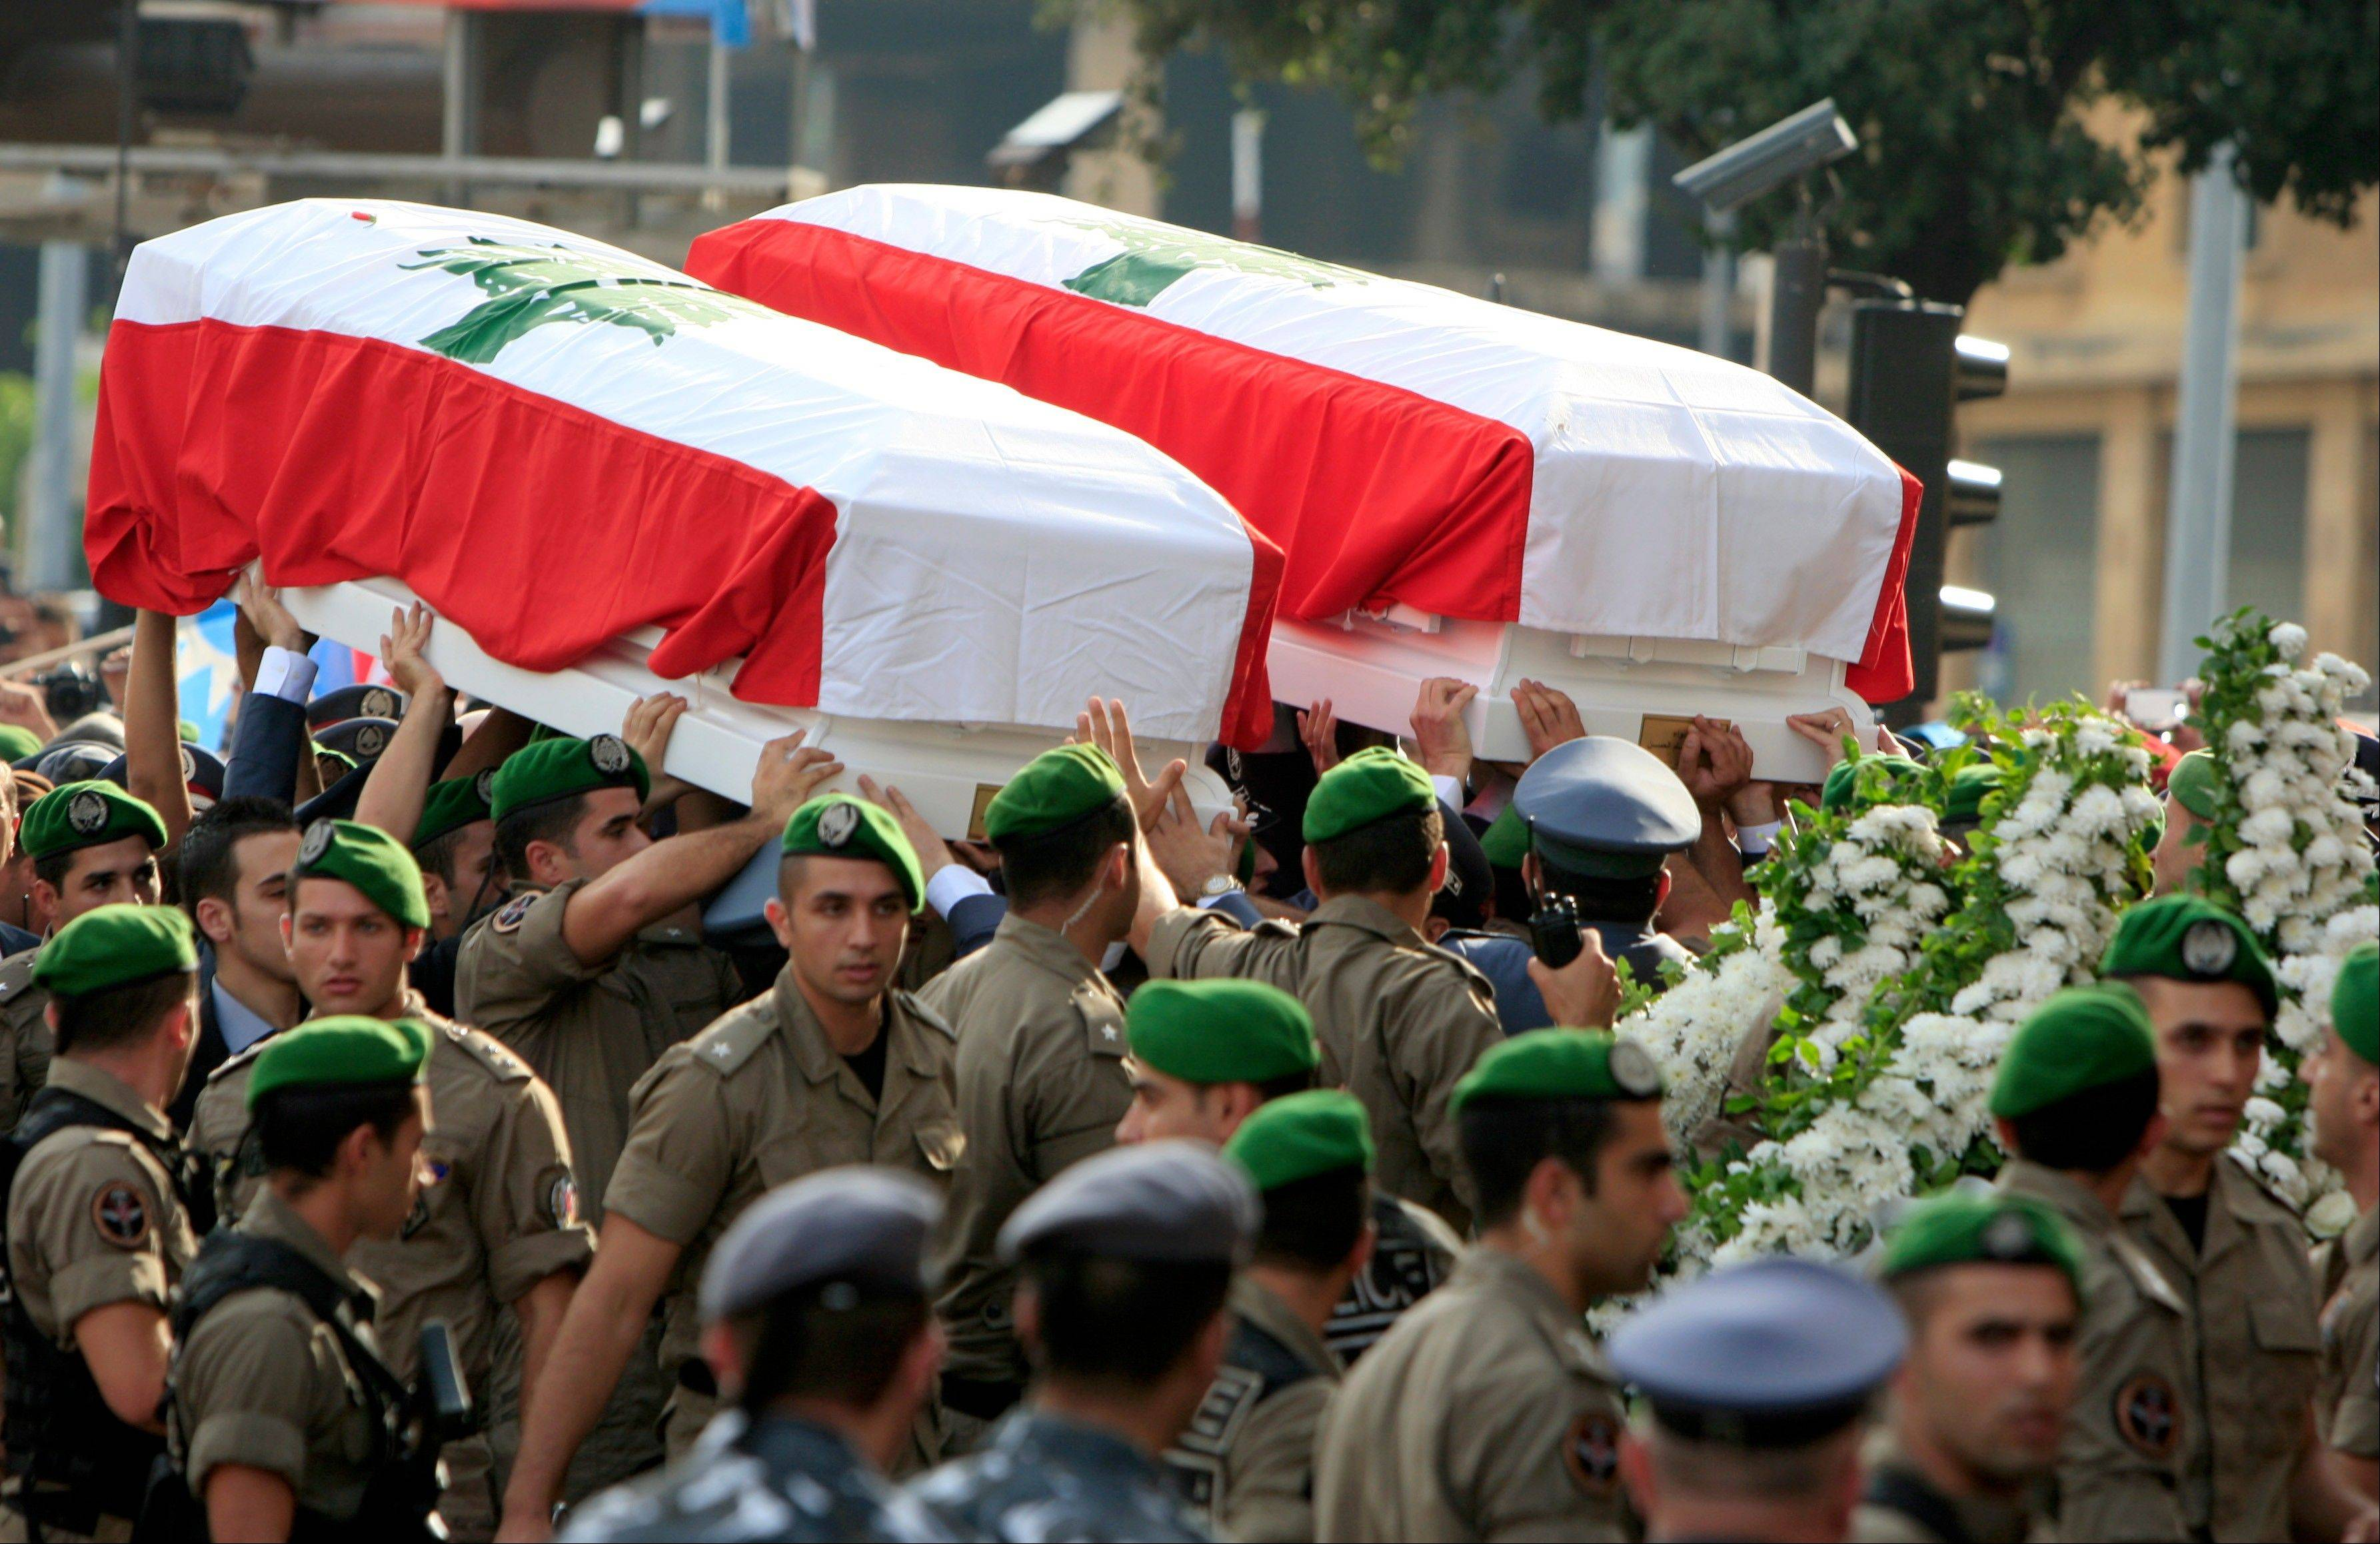 A Lebanese honor guard carries coffins wrapped with Lebanese flags of Brig. Gen. Wissam al-Hassan and his bodyguard, Ahmad Sahyouni, who were assassinated on Friday by a car bomb, during their funeral procession at Martyrs' Square in Beirut, Lebanon, Sunday. Thousands of Lebanese waving the national flag packed a central square in downtown Beirut Sunday for the funeral of a top intelligence official assassinated in a car bombing that many blame on the regime in neighboring Syria.